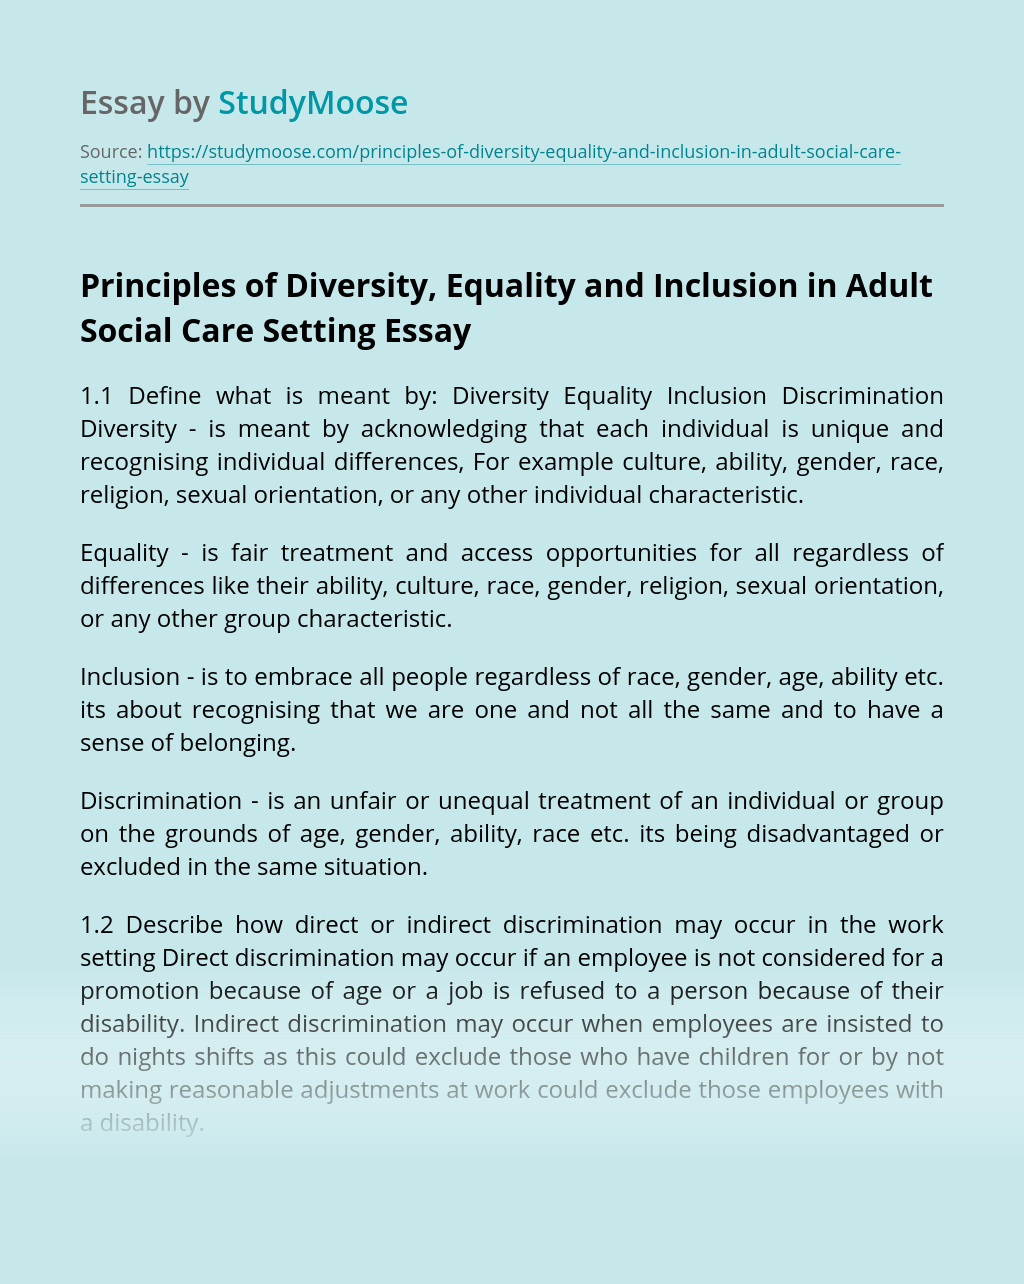 Principles of Diversity, Equality and Inclusion in Adult Social Care Setting